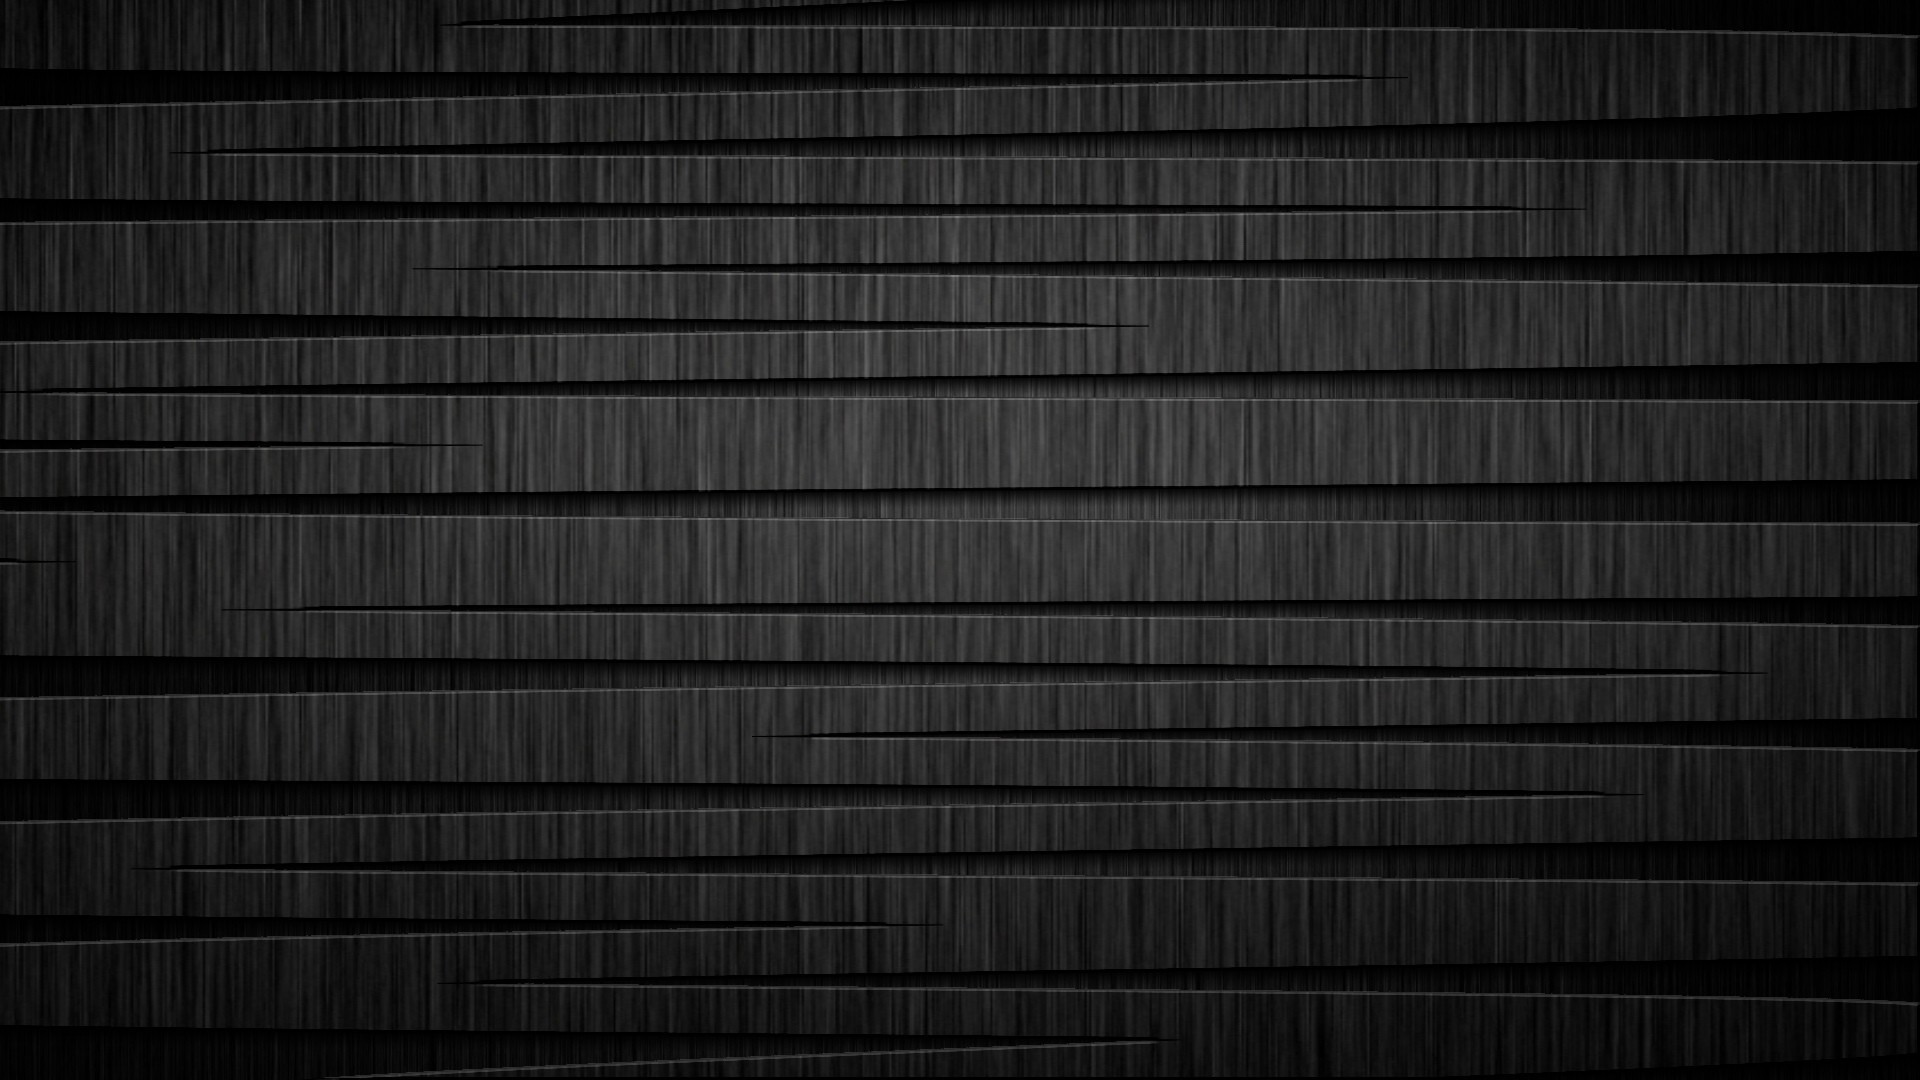 Black Wallpaper Background : Black Backgrounds wallpaper  2560x1600  #44700